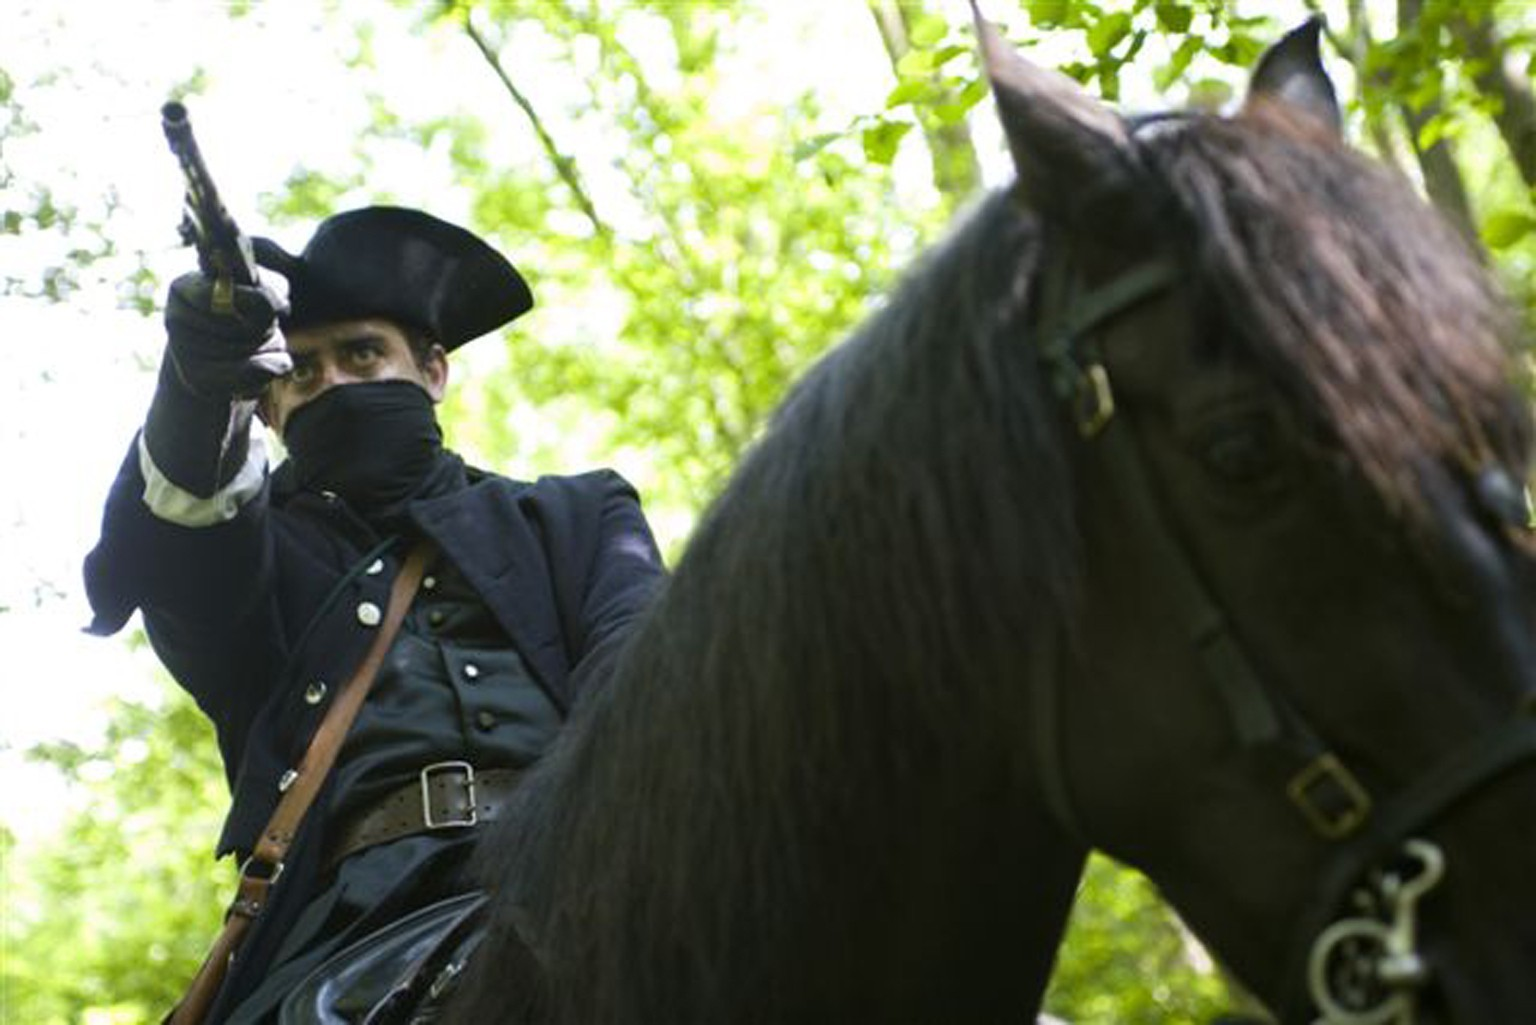 It is said some travellers carried spare cash to hand to any highwayman who ambushed their coach